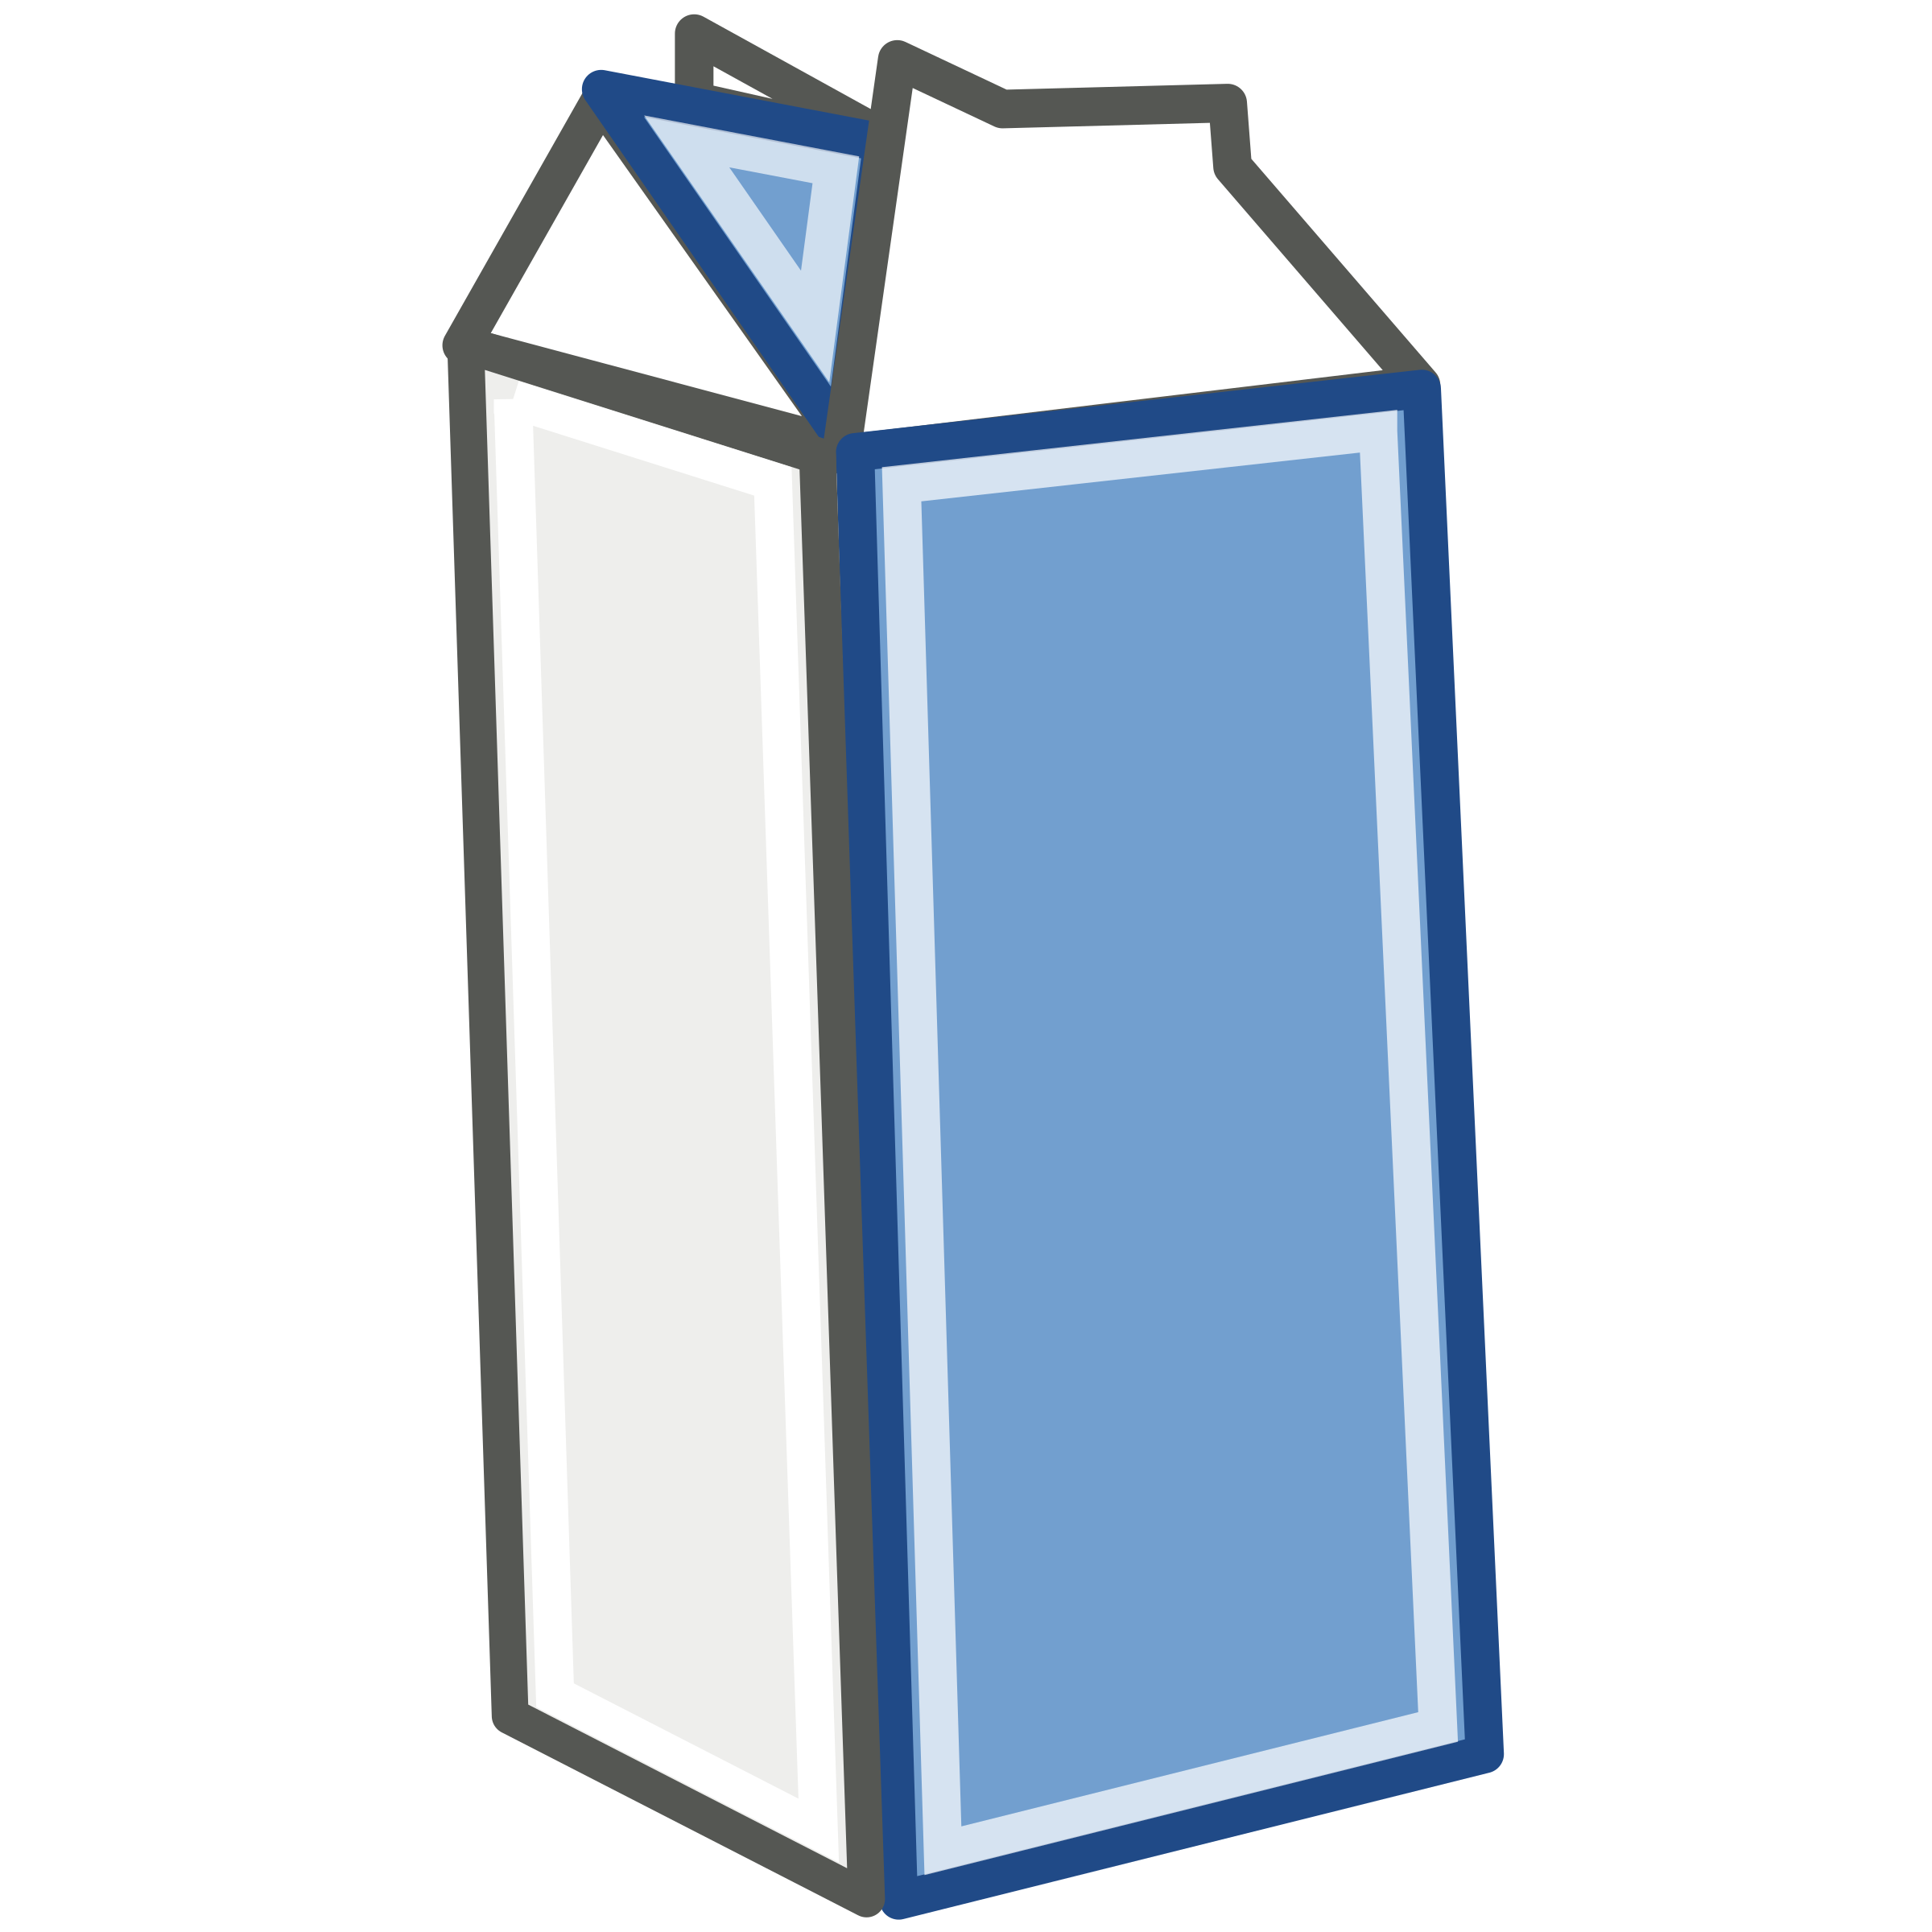 Tango Style Milk Carton by rugby471